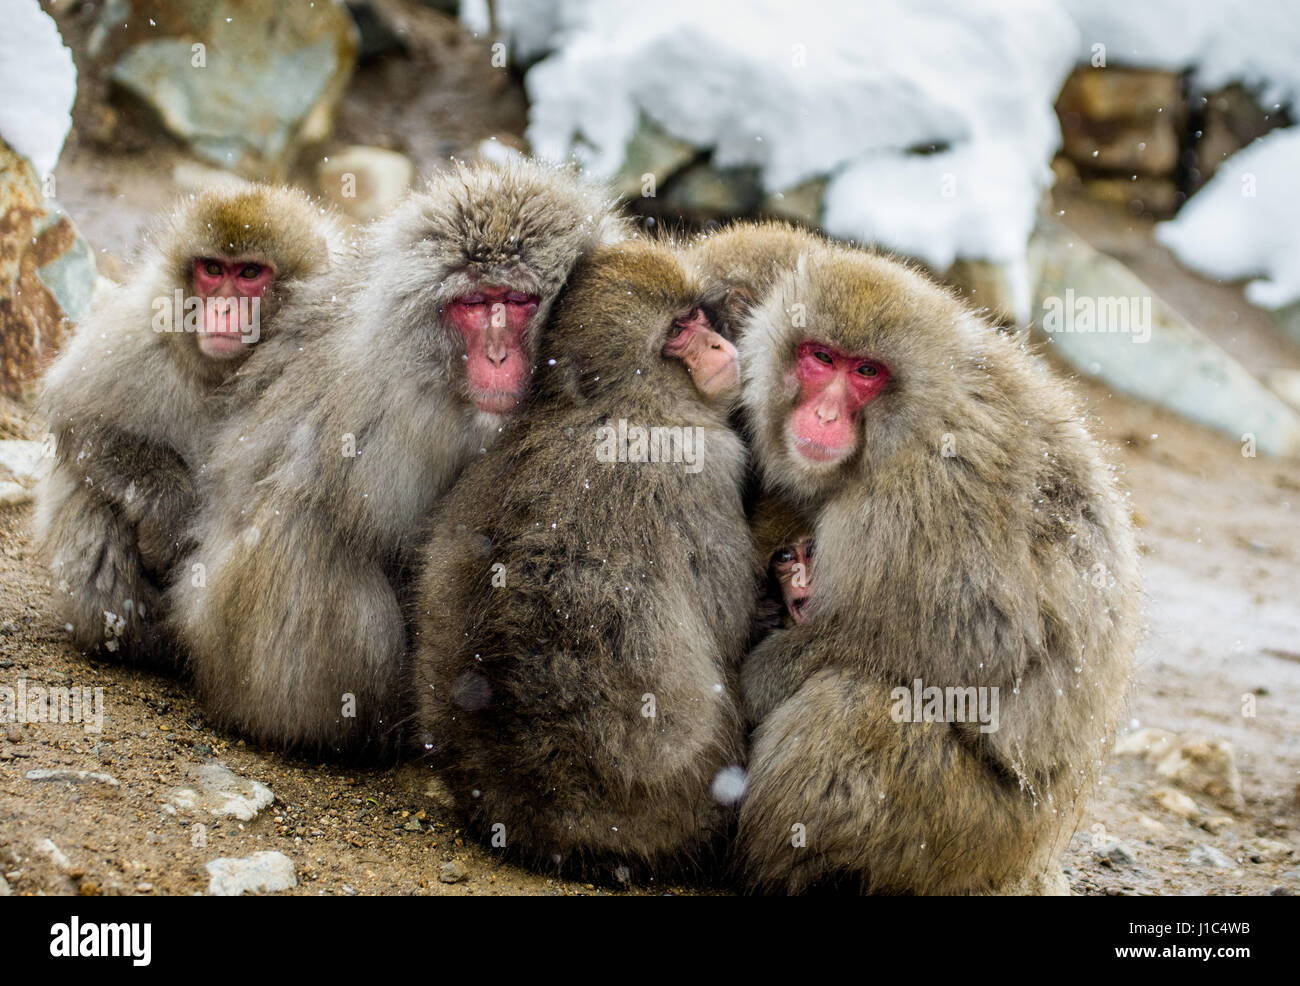 Group of Japanese macaques sitting together on the rocks. Japan. Nagano. Jigokudani Monkey Park. An excellent illustration. - Stock Image